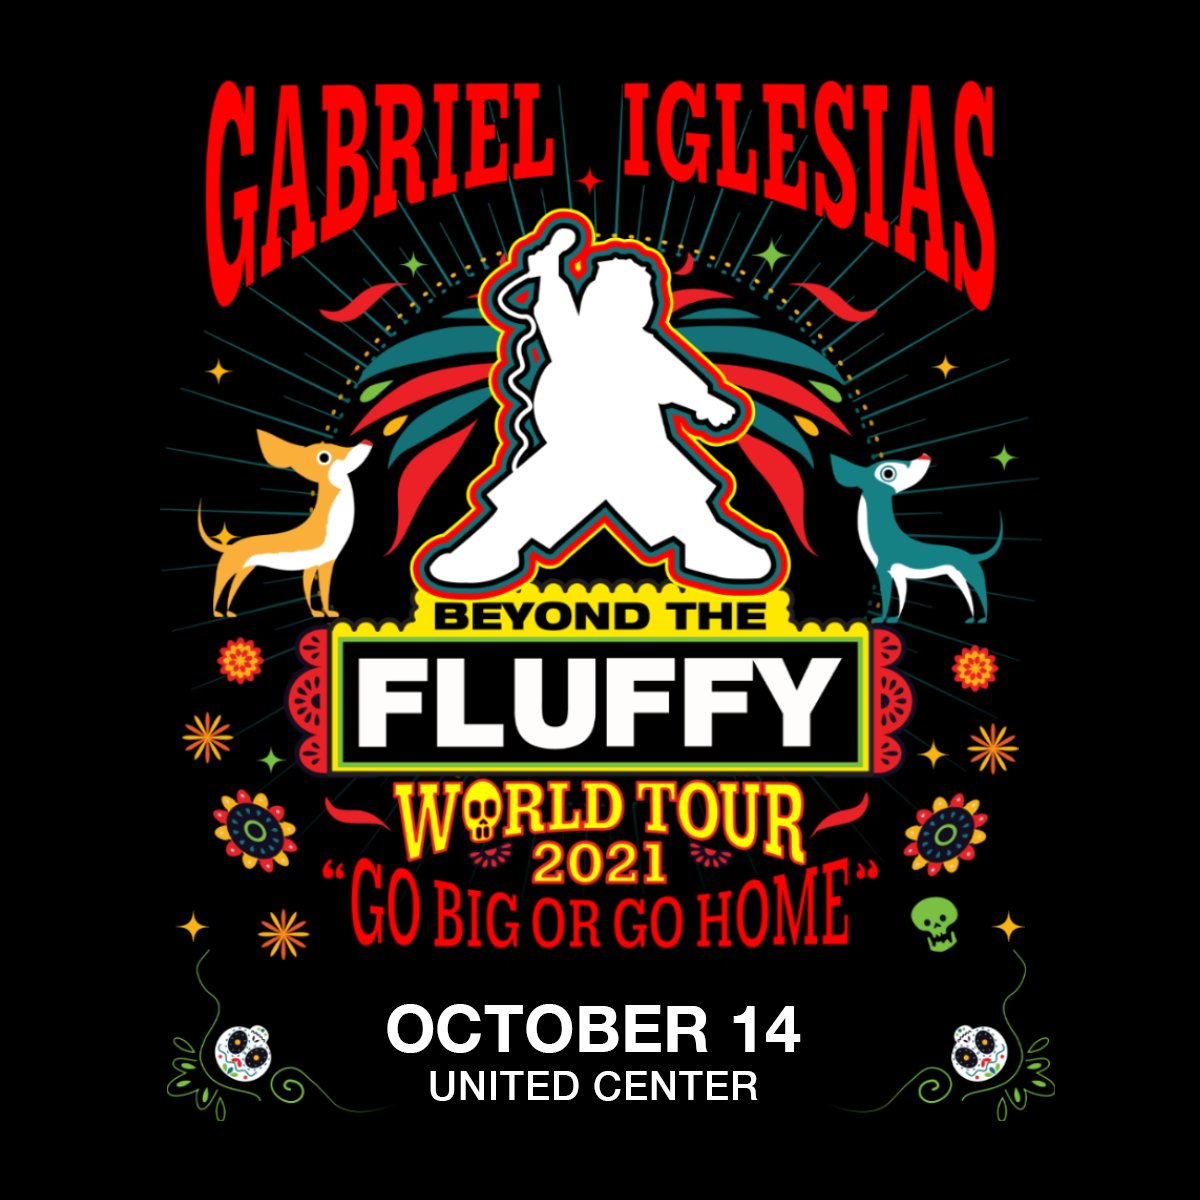 """The @FluffyGuy """"Beyond The Fluffy"""" World Tour """"Go Big or Go Home"""" date originally scheduled to take place here on Mar. 14, 2020, that was postponed to Oct. 18, 2020, has been rescheduled to Oct. 14, 2021.  Tickets are valid for the new date. Details: https://t.co/AeKRawPhL7 https://t.co/TO76KtjYOt"""